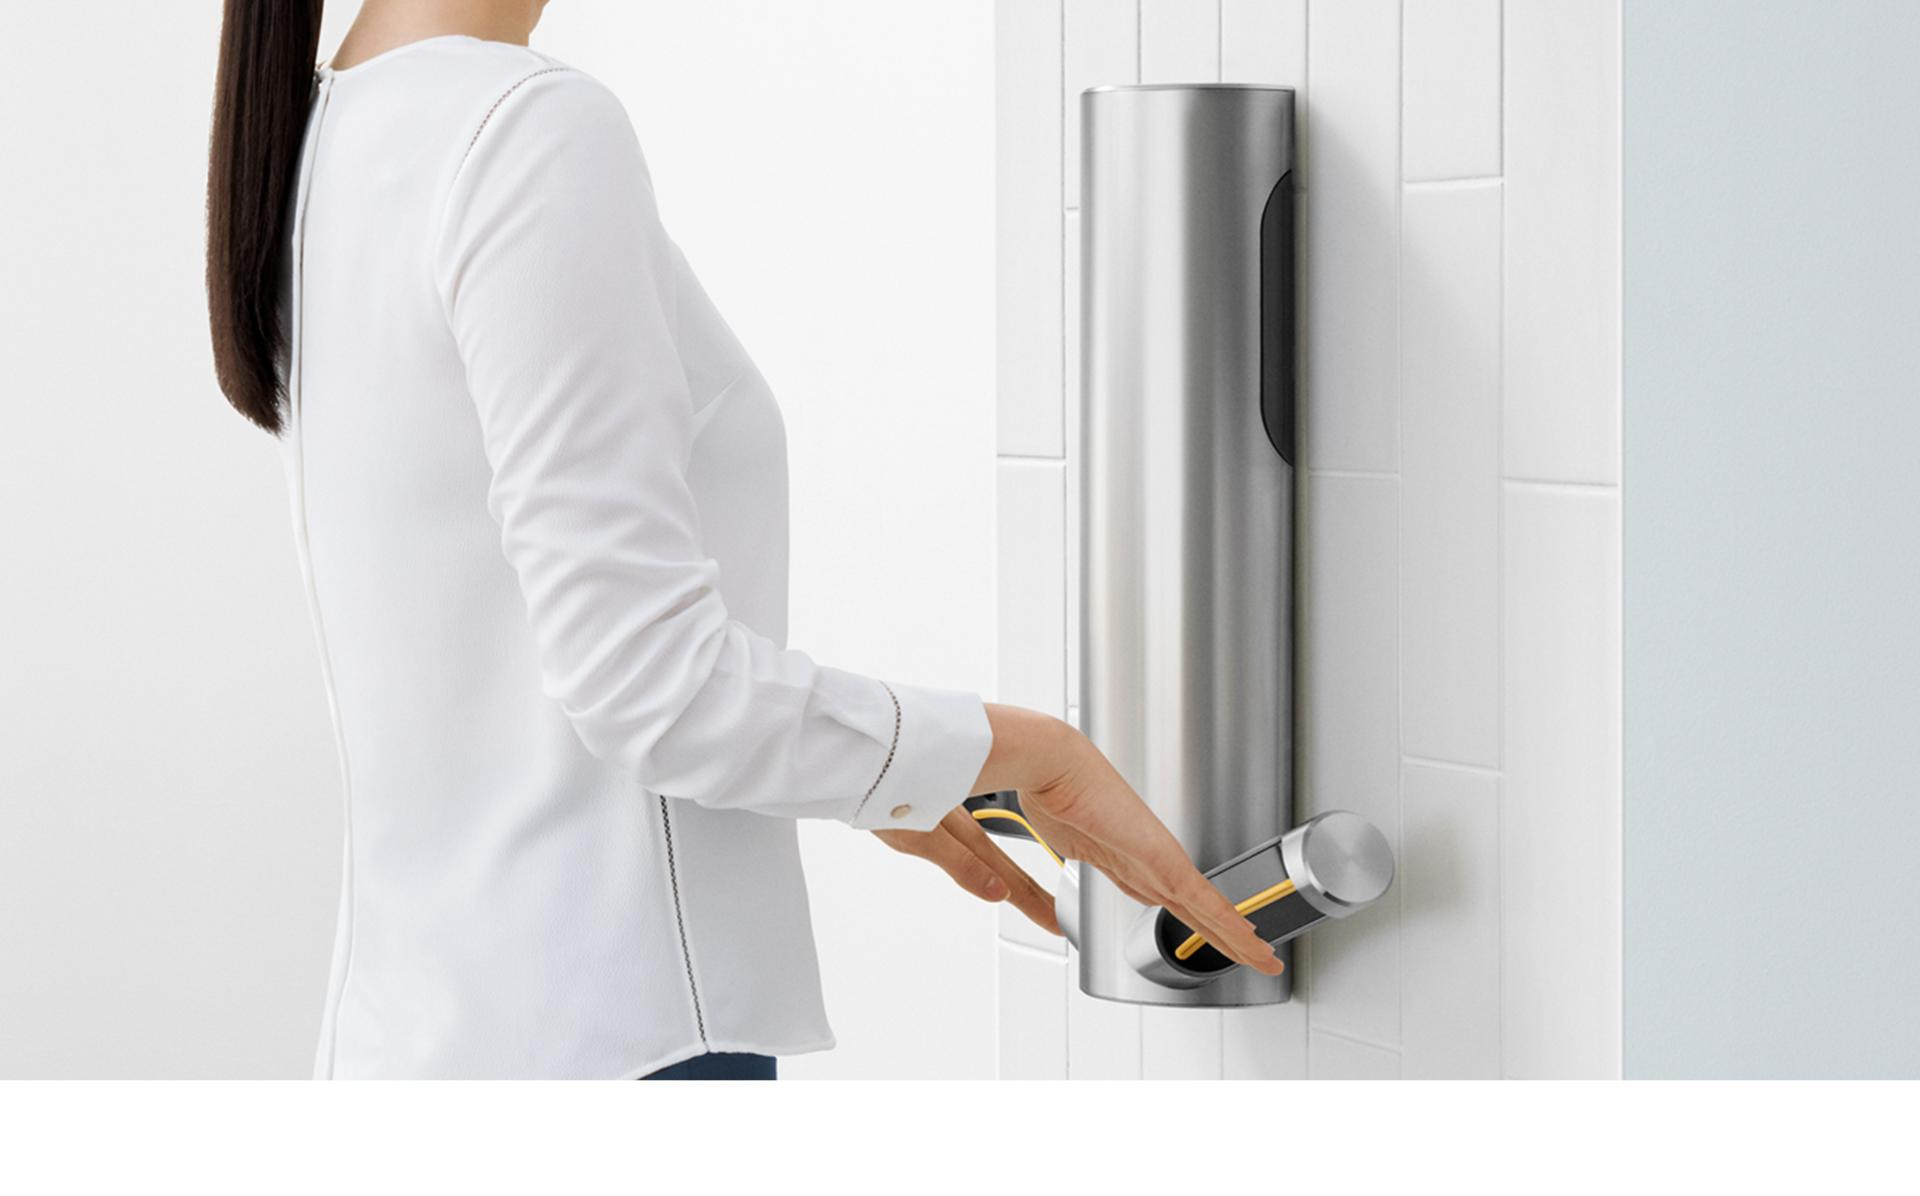 Hands being dried under Dyson Airblade 9KJ hand dryer